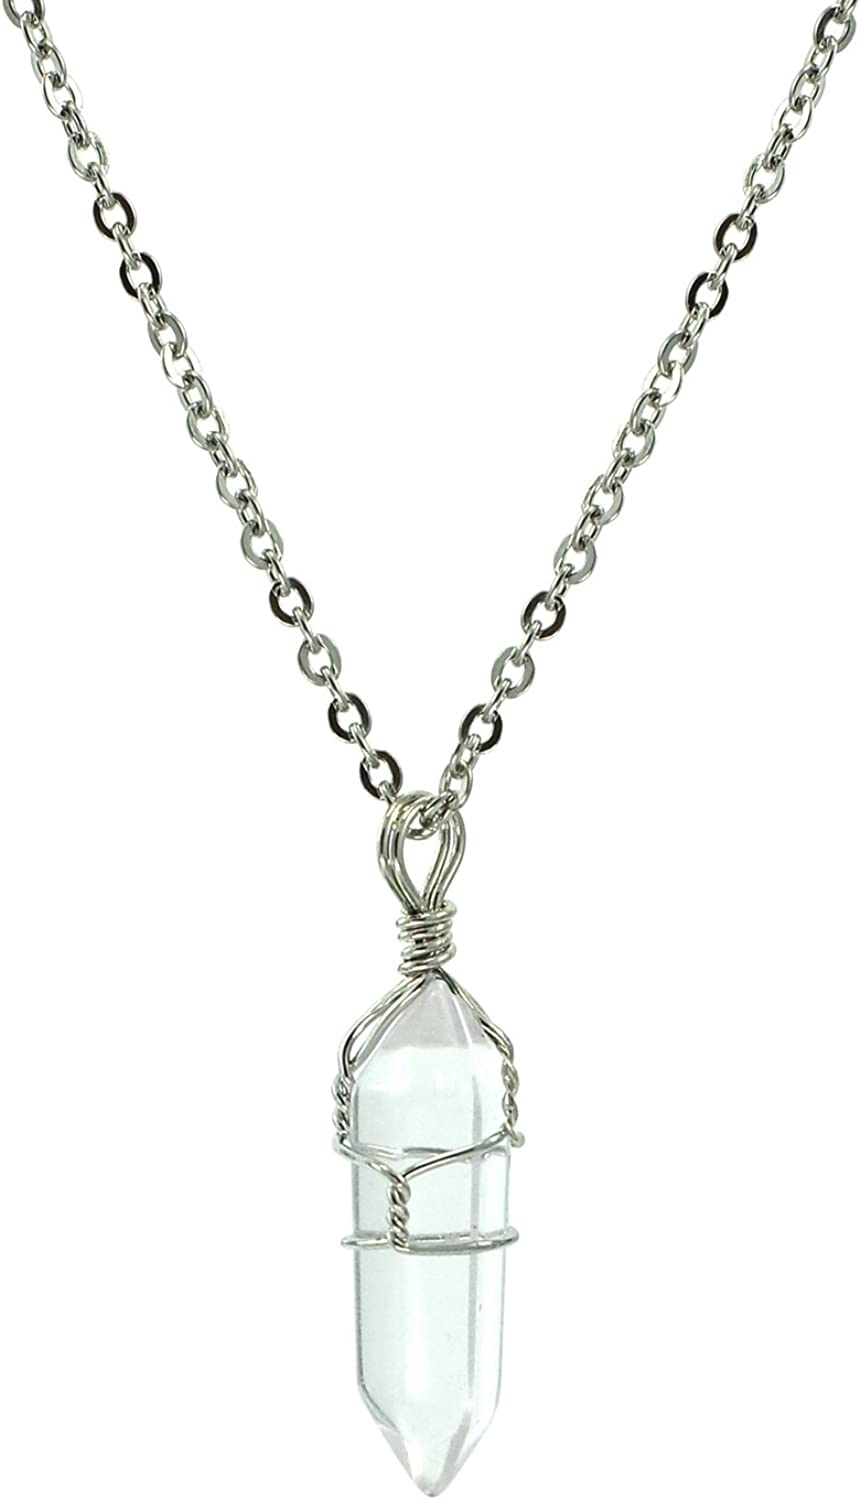 2021 autumn and winter new Paialco Jewelry Tucson Mall Hand Wired Natural Point Quartz Crystal Healing